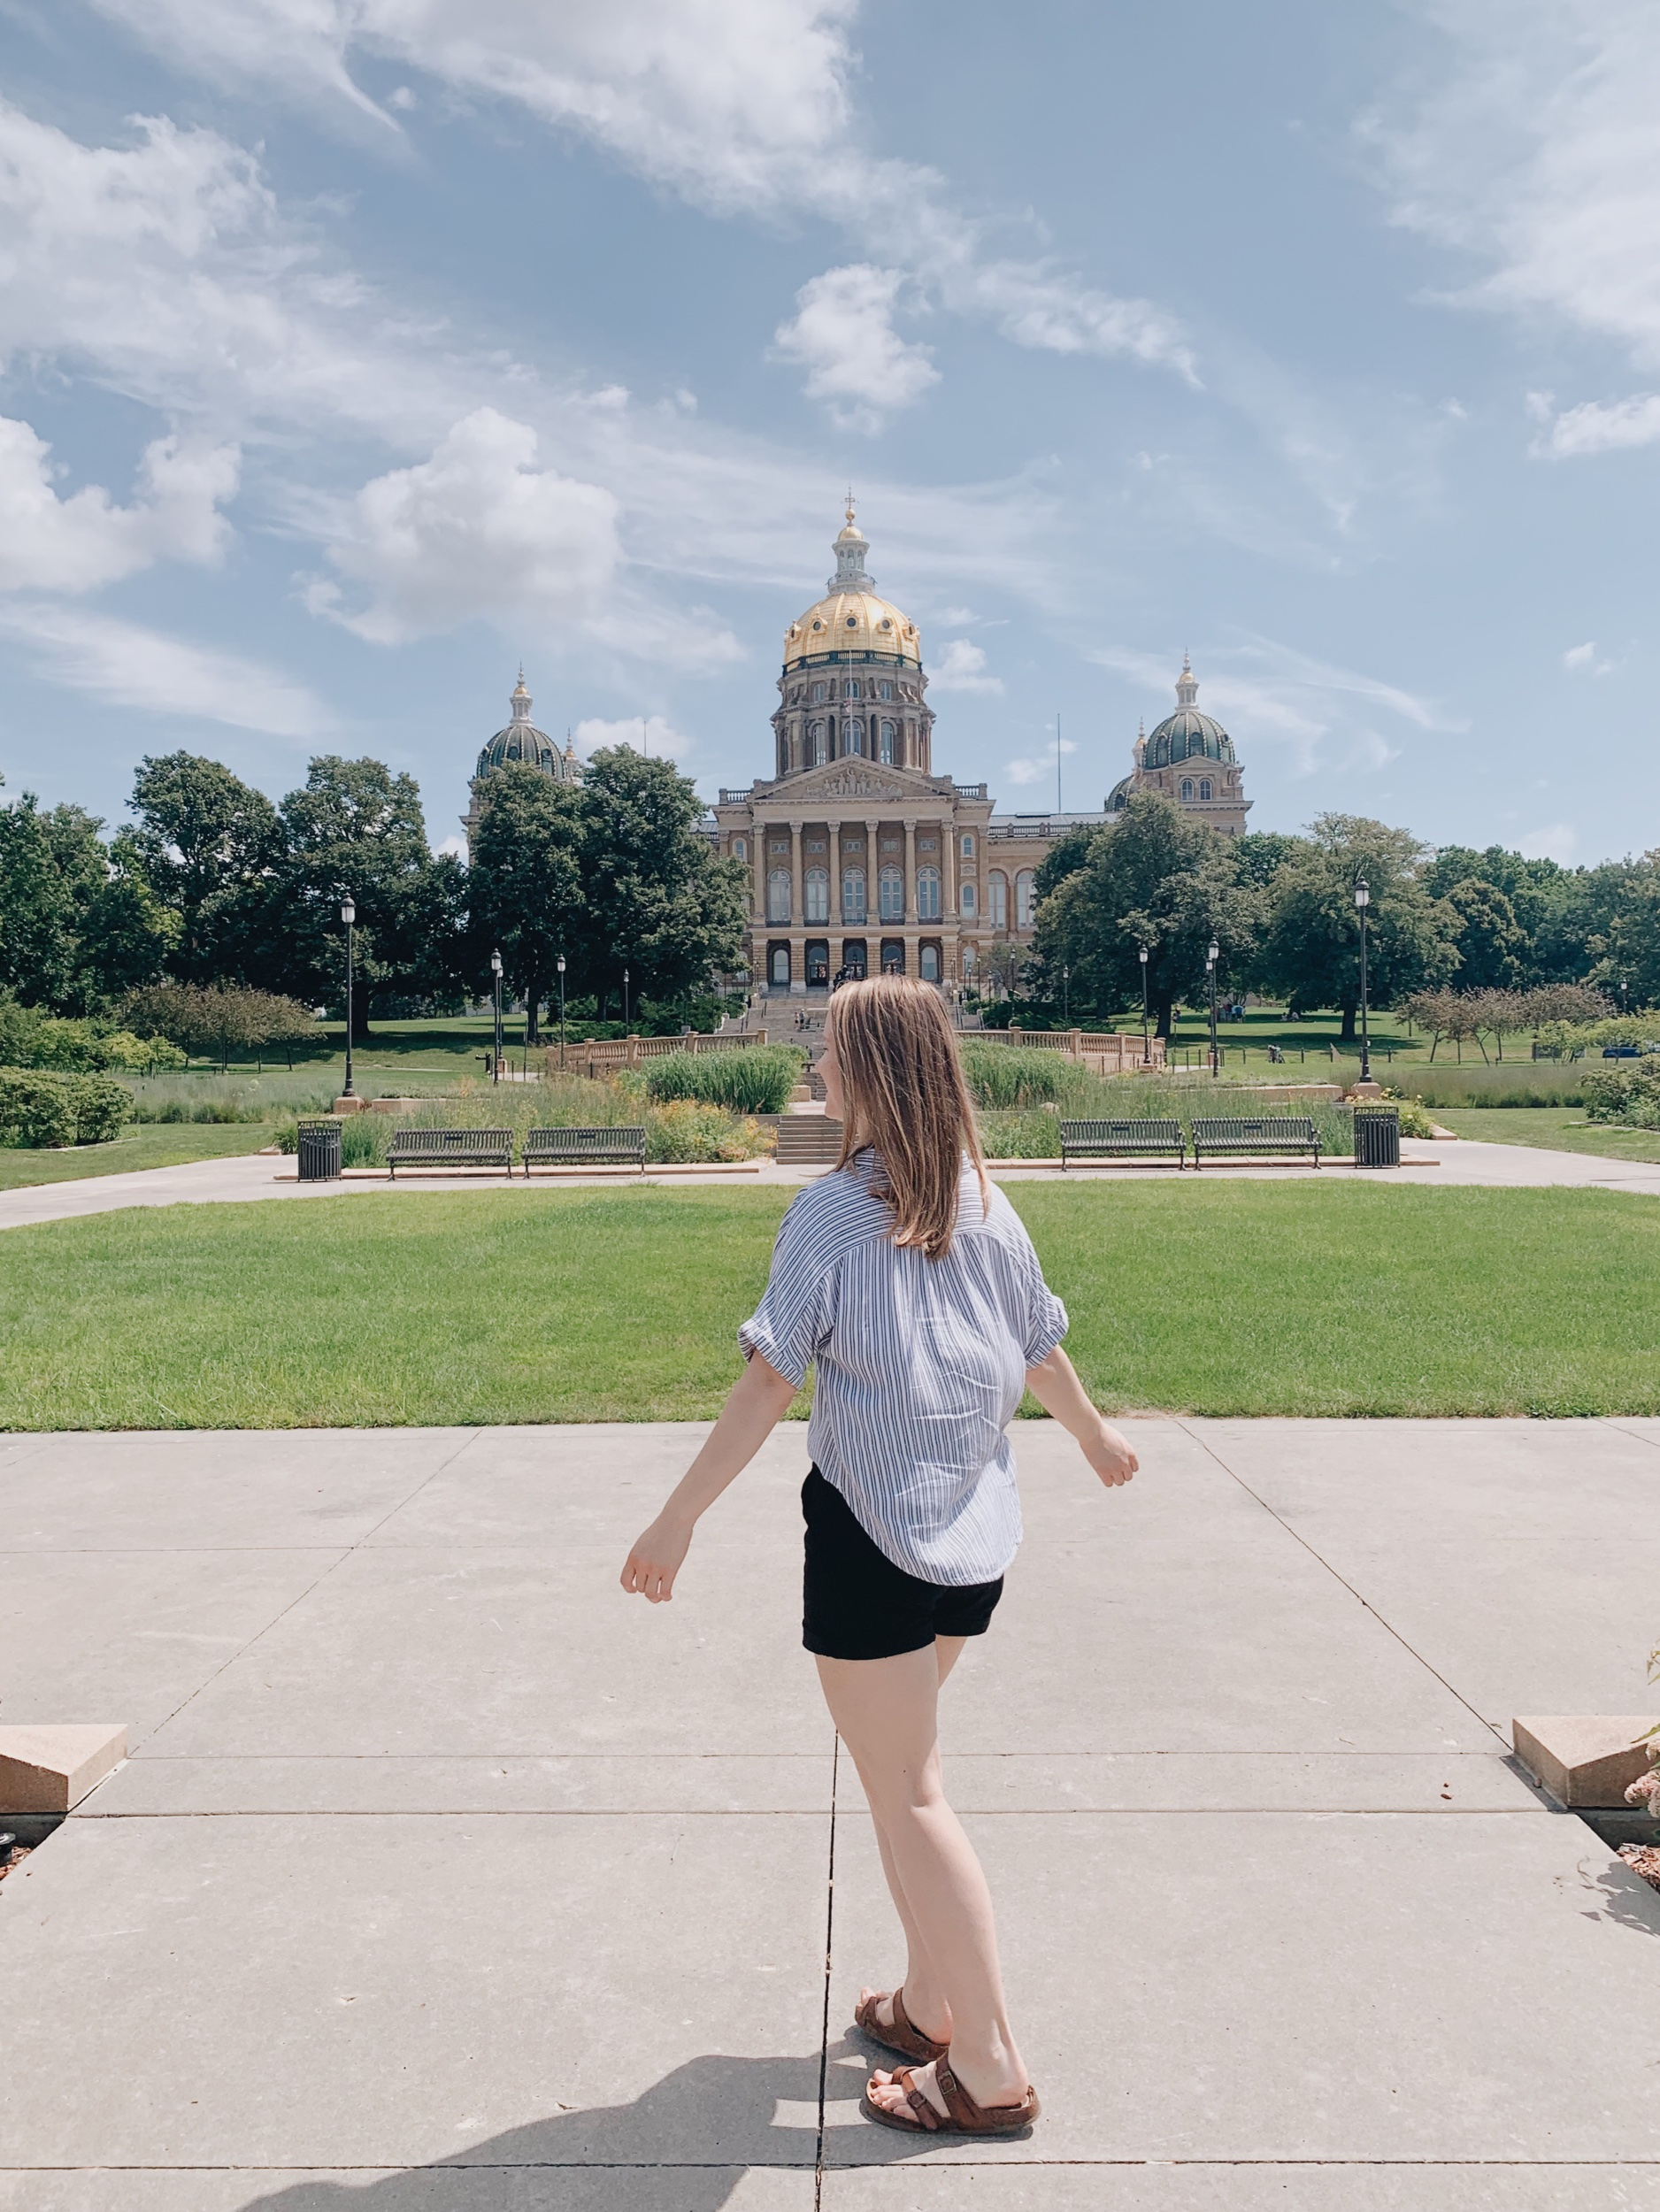 instagram capitol building iowa